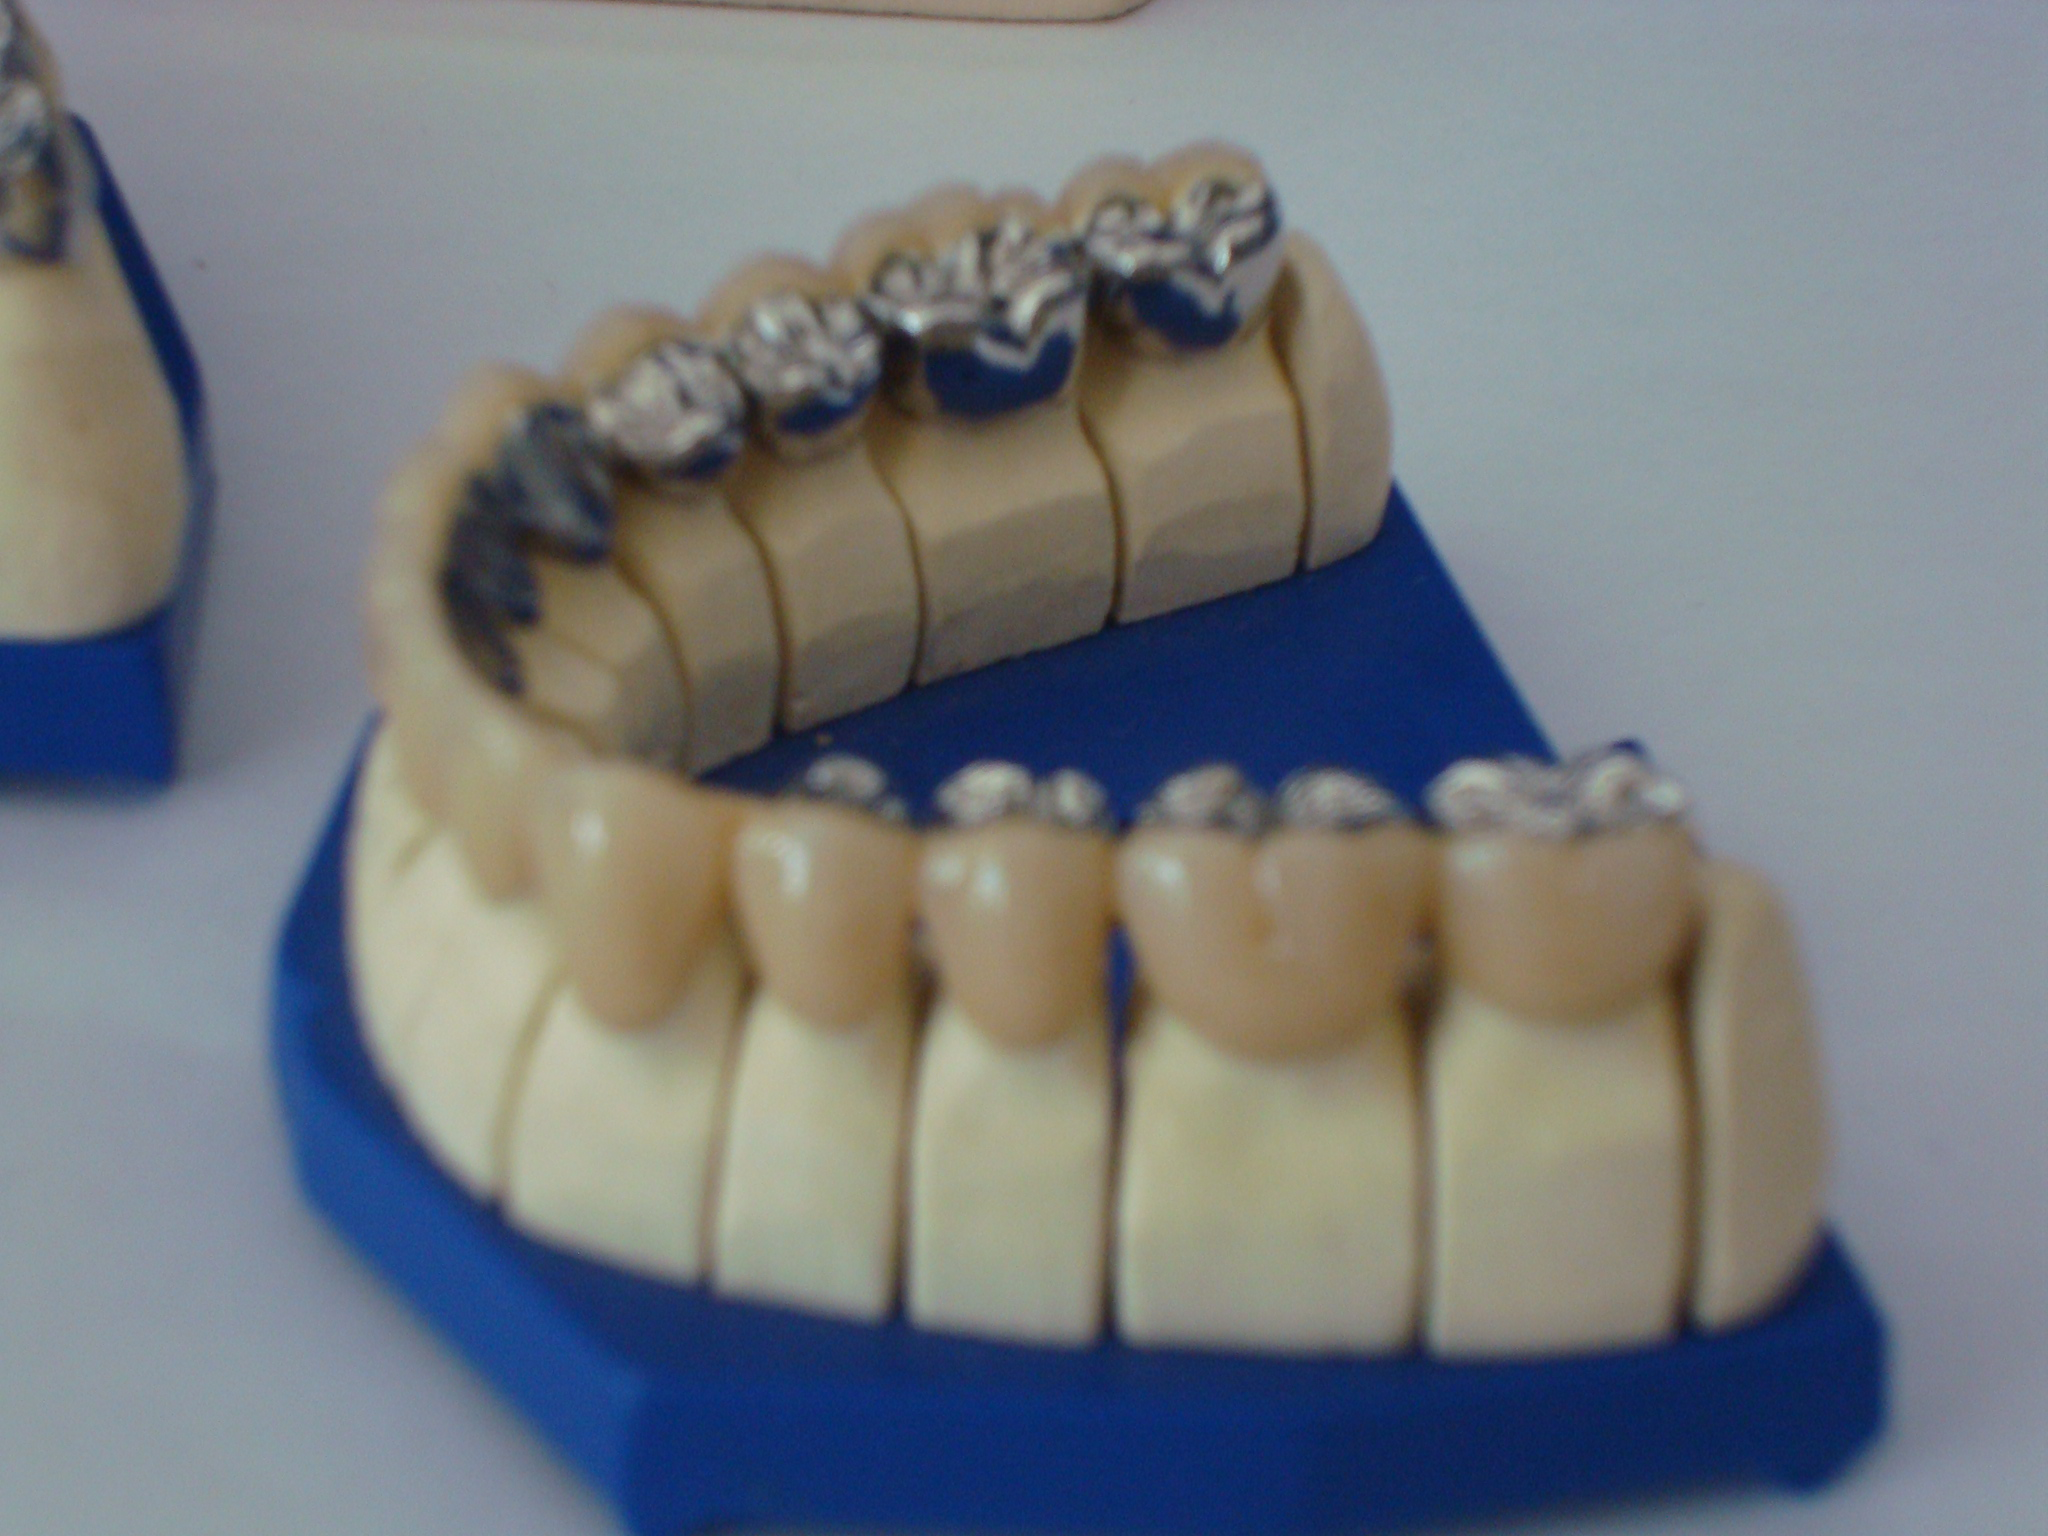 We offer high quality dental services in Chatswood